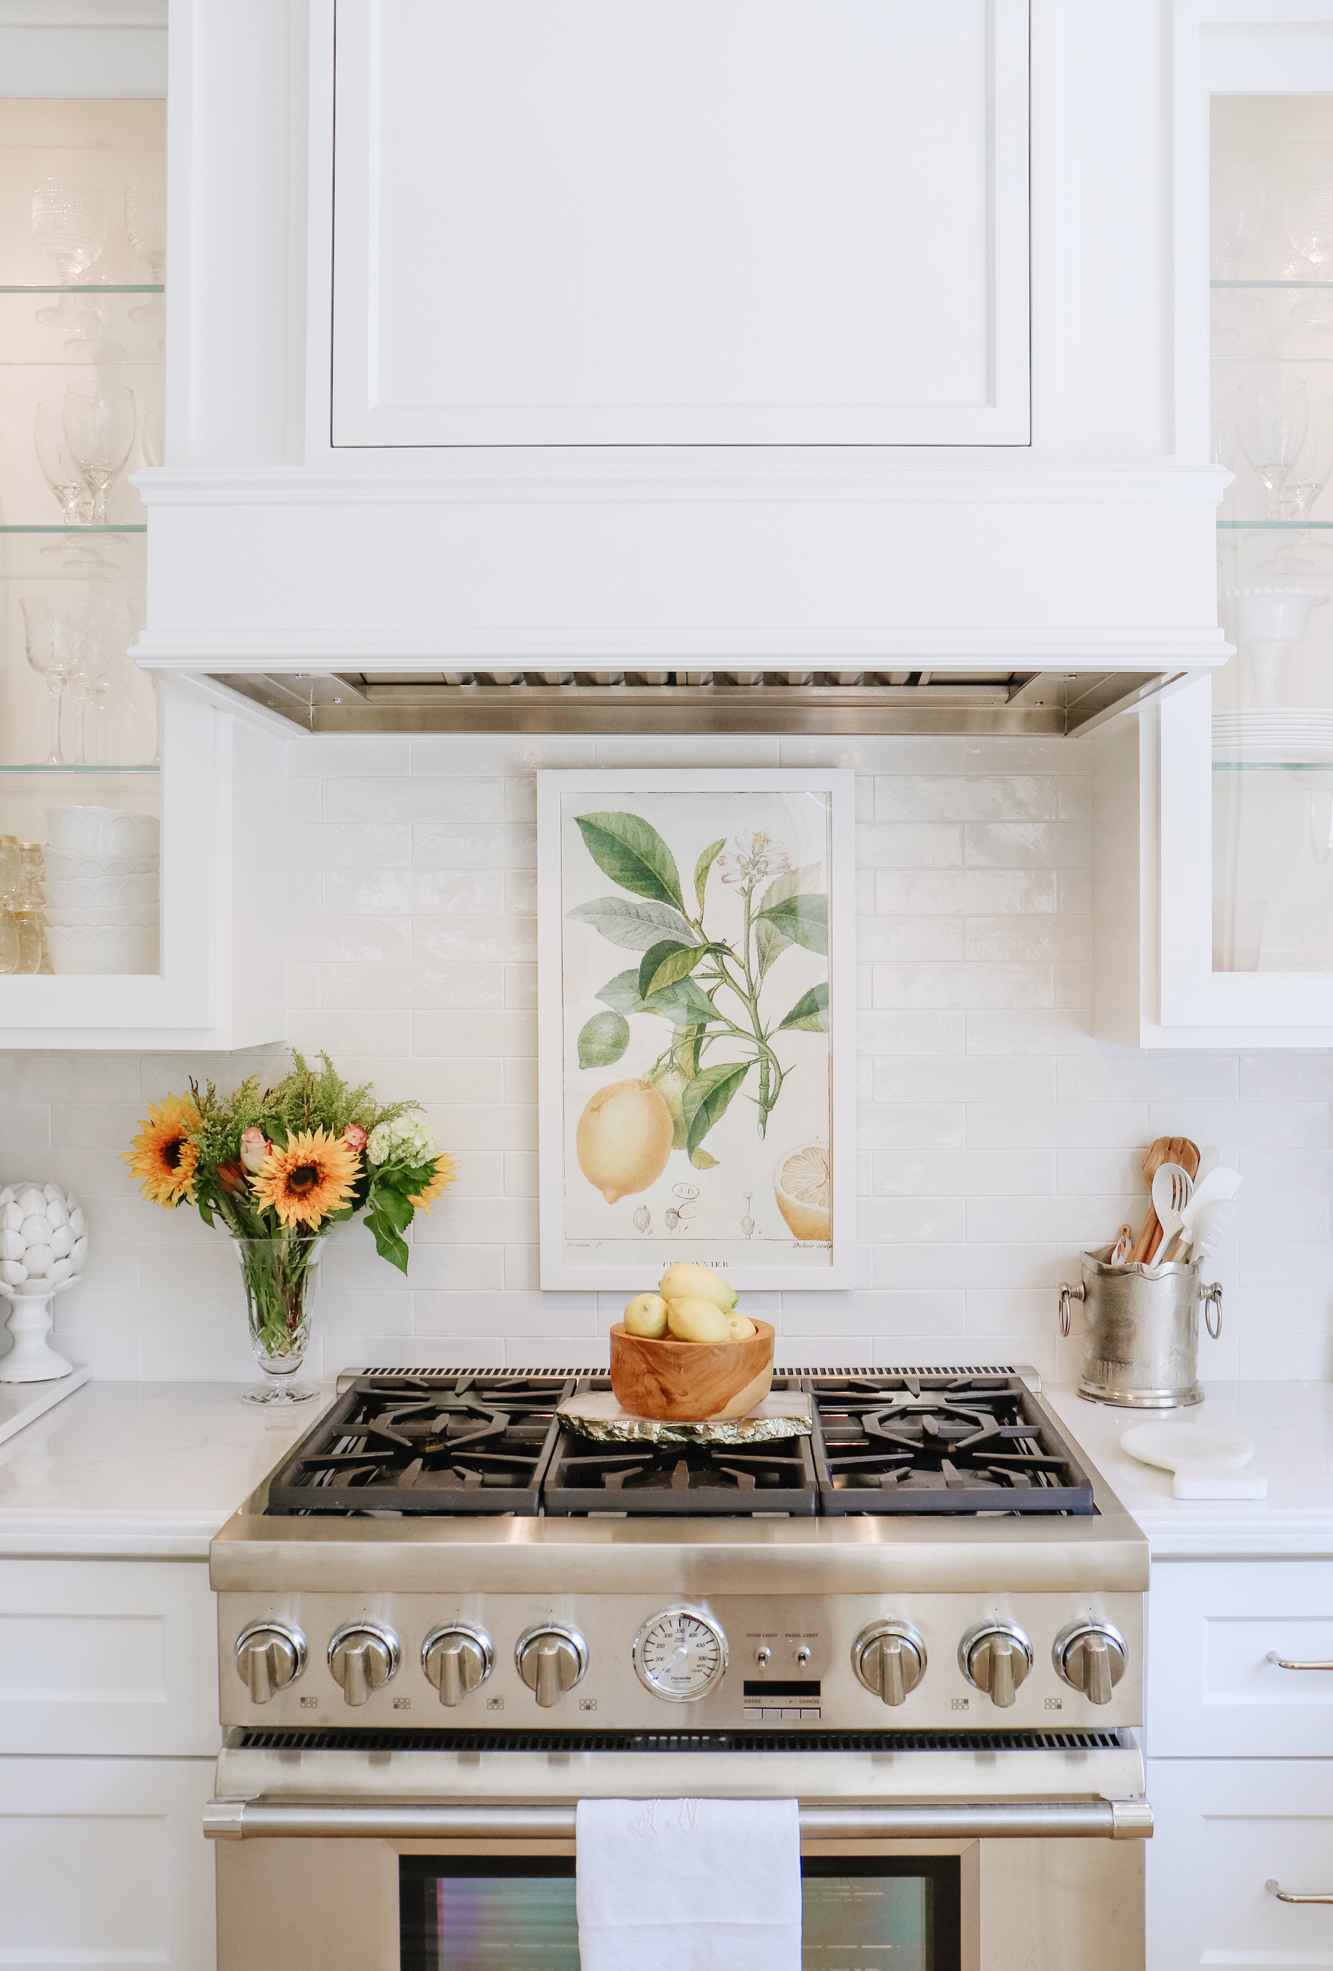 15 Stylish and Affordable Art Pieces For Your Home - Walmart has thousands of some of the prettiest prints, framed art, and more. I rounded up the best! | Kristy Wicks